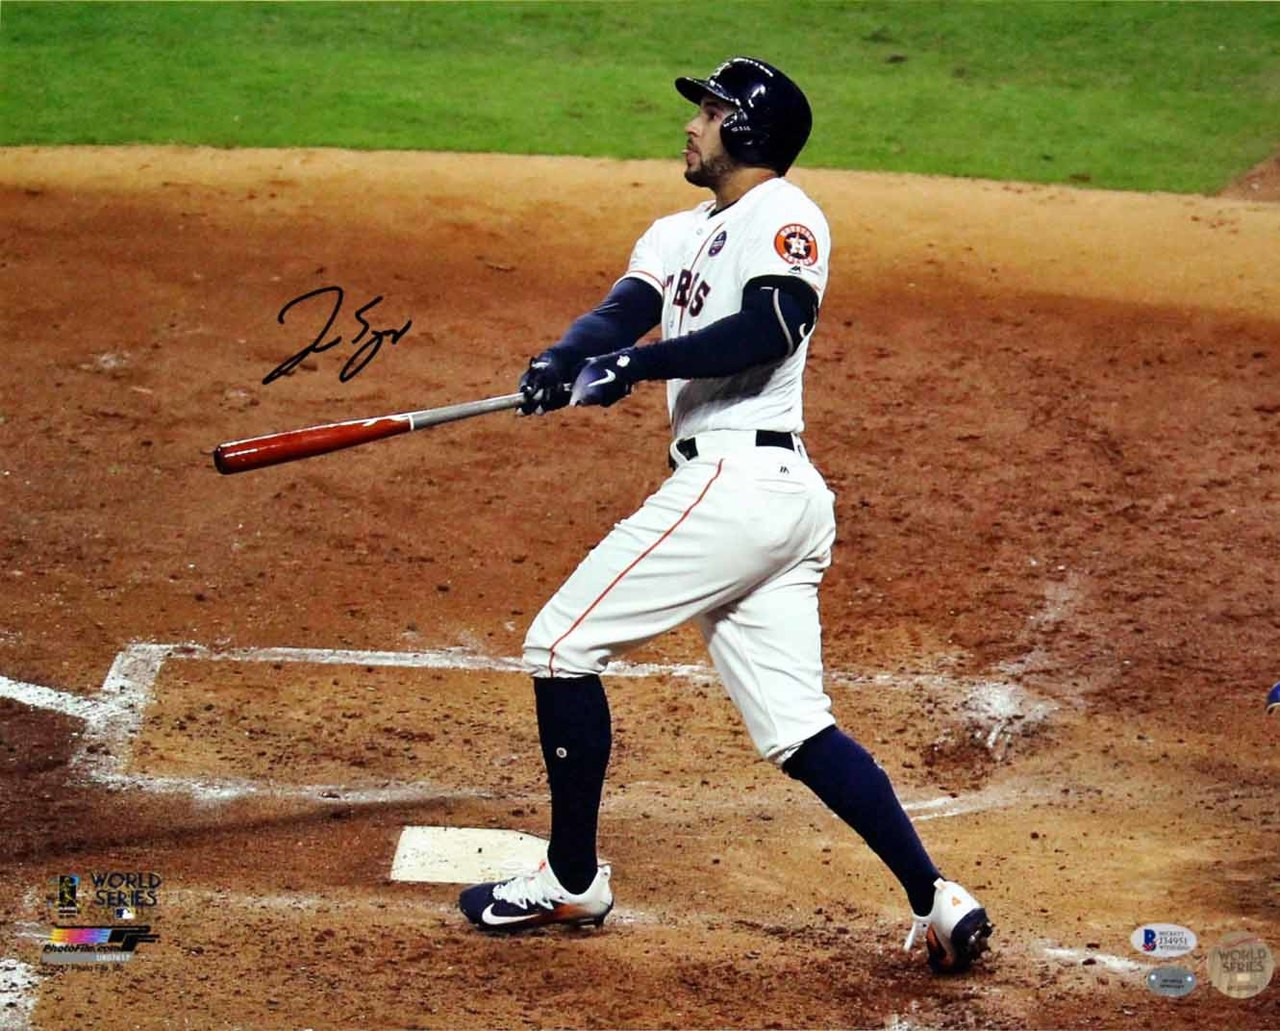 91325b6368a George Springer Signed 16x20 World Series Photo - Beckett ...